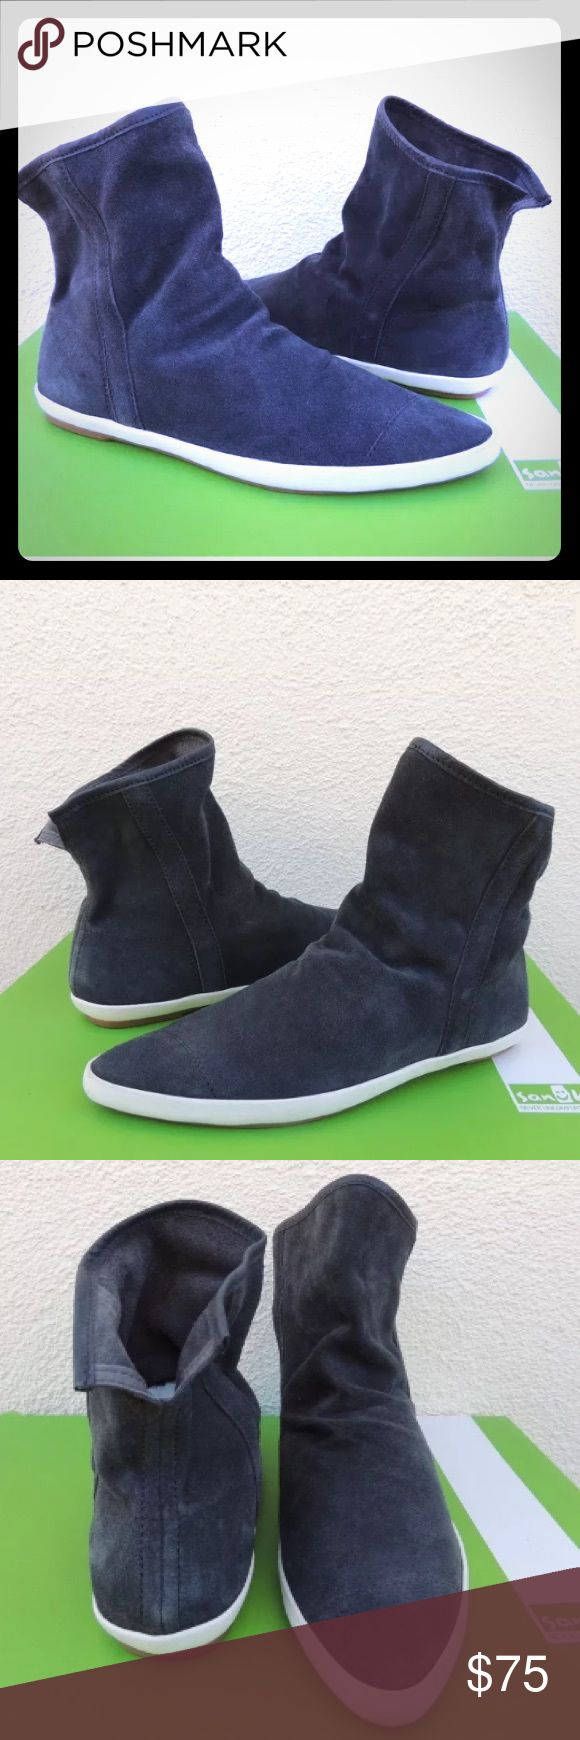 Sanuk Kat sphynx  lux suede slip on boot RARE sold out Kat sphynx Lux charcoal grey slip on boot pointed toe rubber sole new with box never worn org price $100 Sanuk Shoes Ankle Boots & Booties